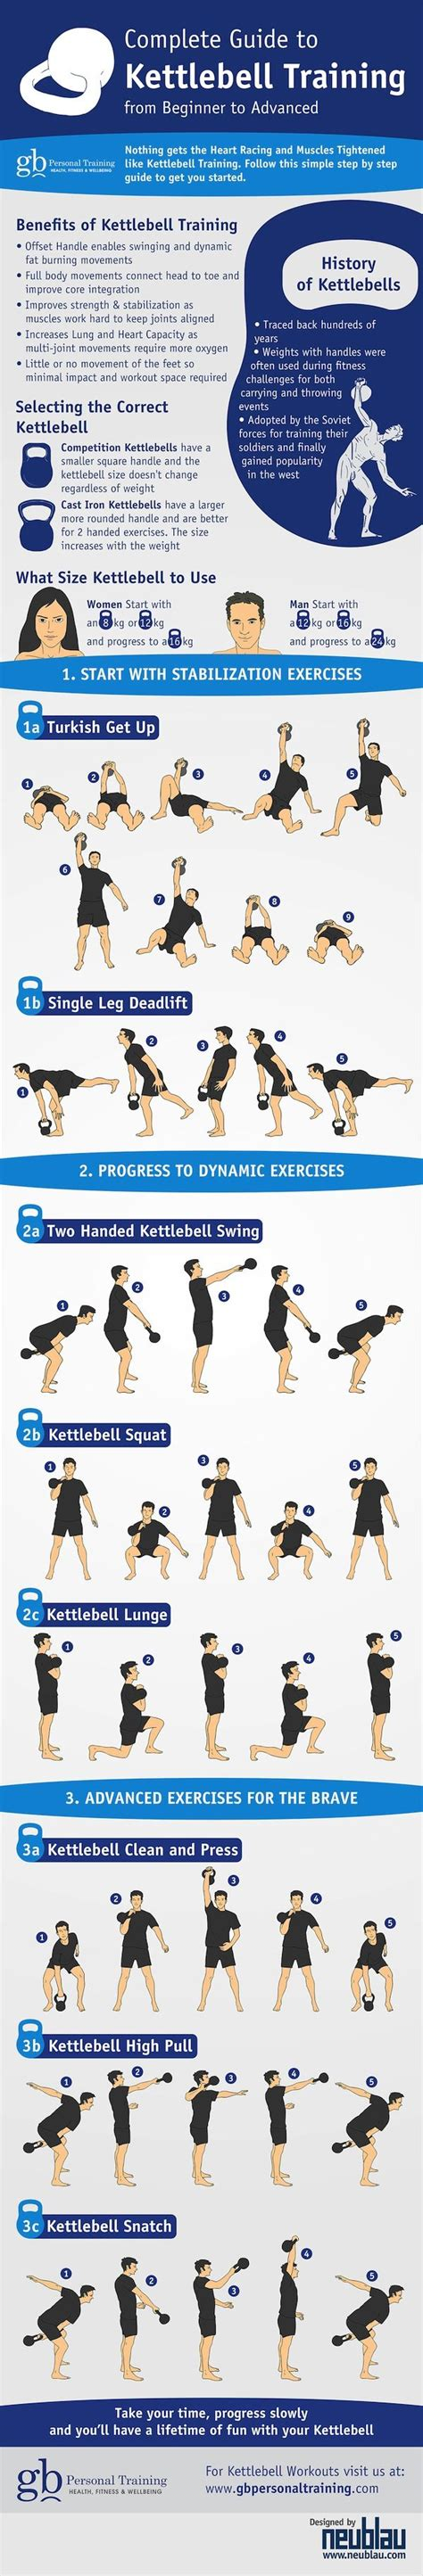 kettlebell training workouts guide infographic exercise exercises fitness complete weight workout beginner beginners body kettle benefits kettlebells greg gym crossfit